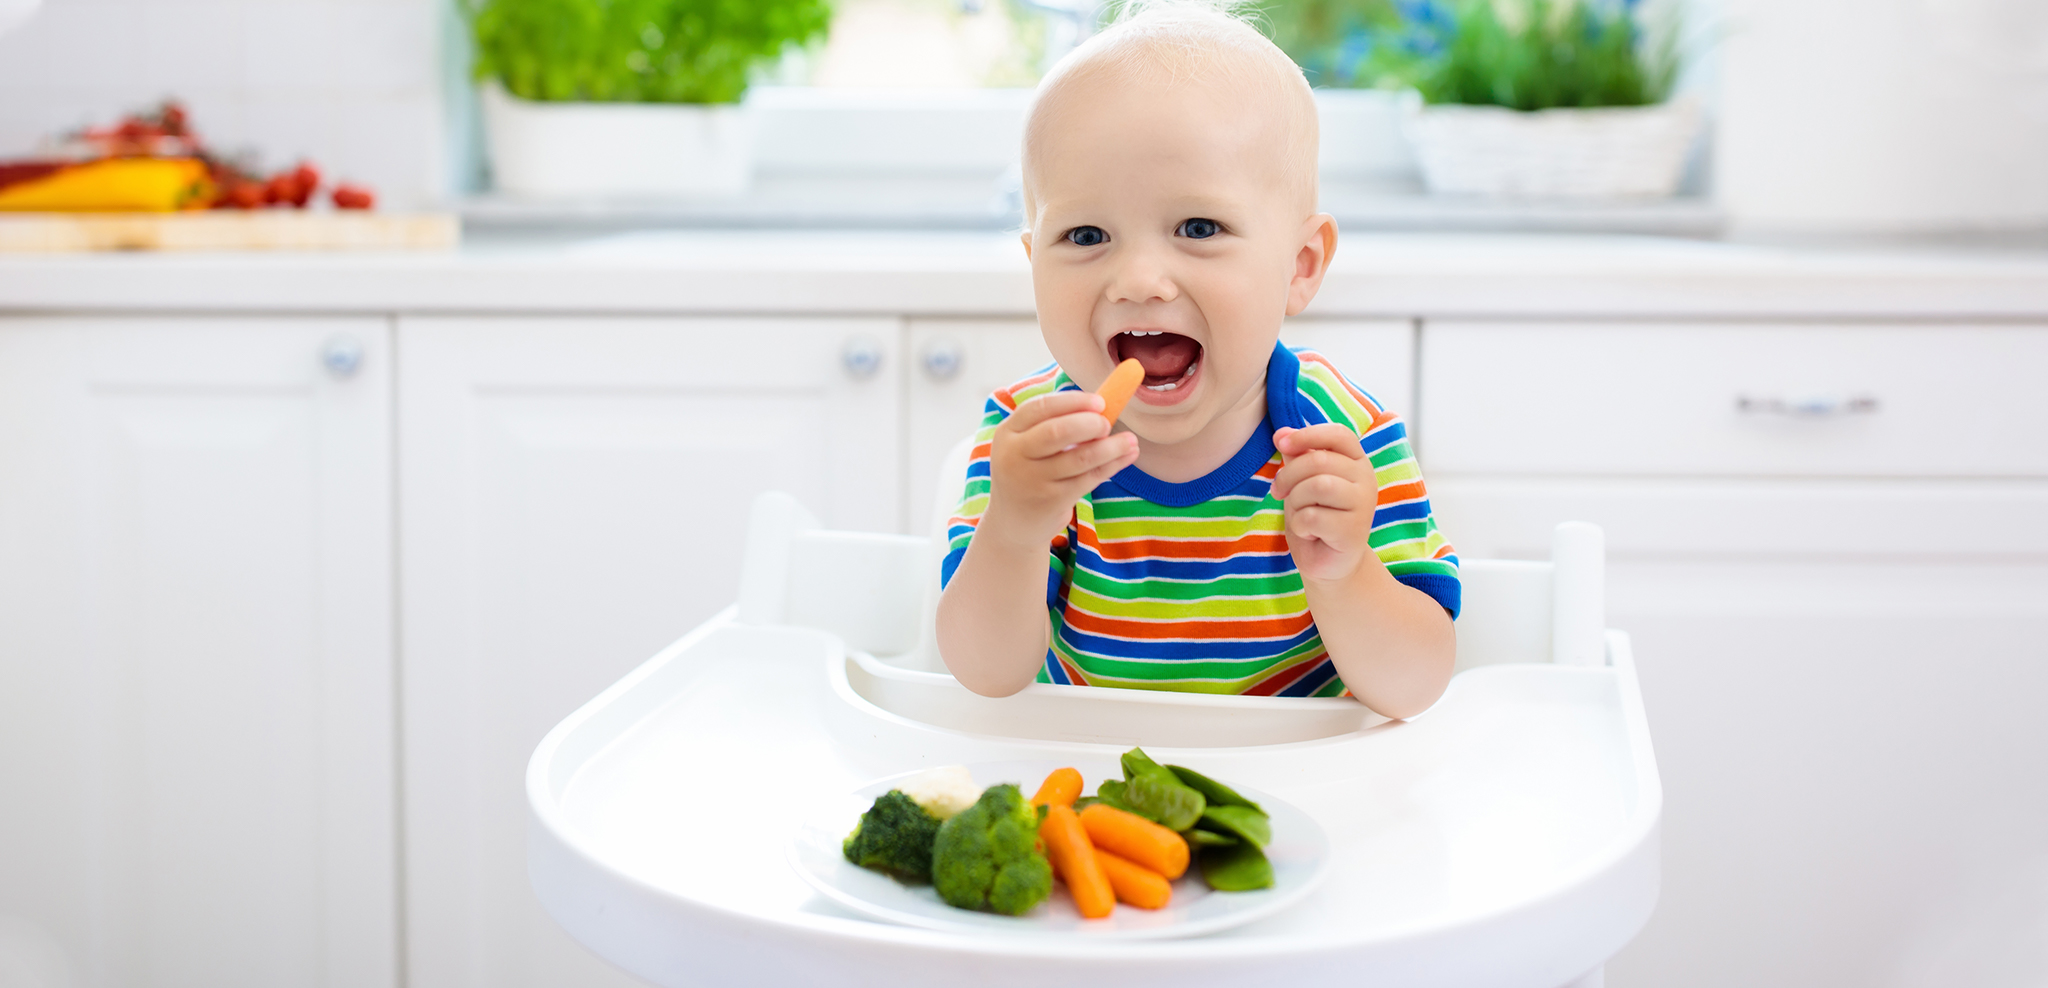 How to Get Your Kids to Eat Veggies With Joy and Pleasure